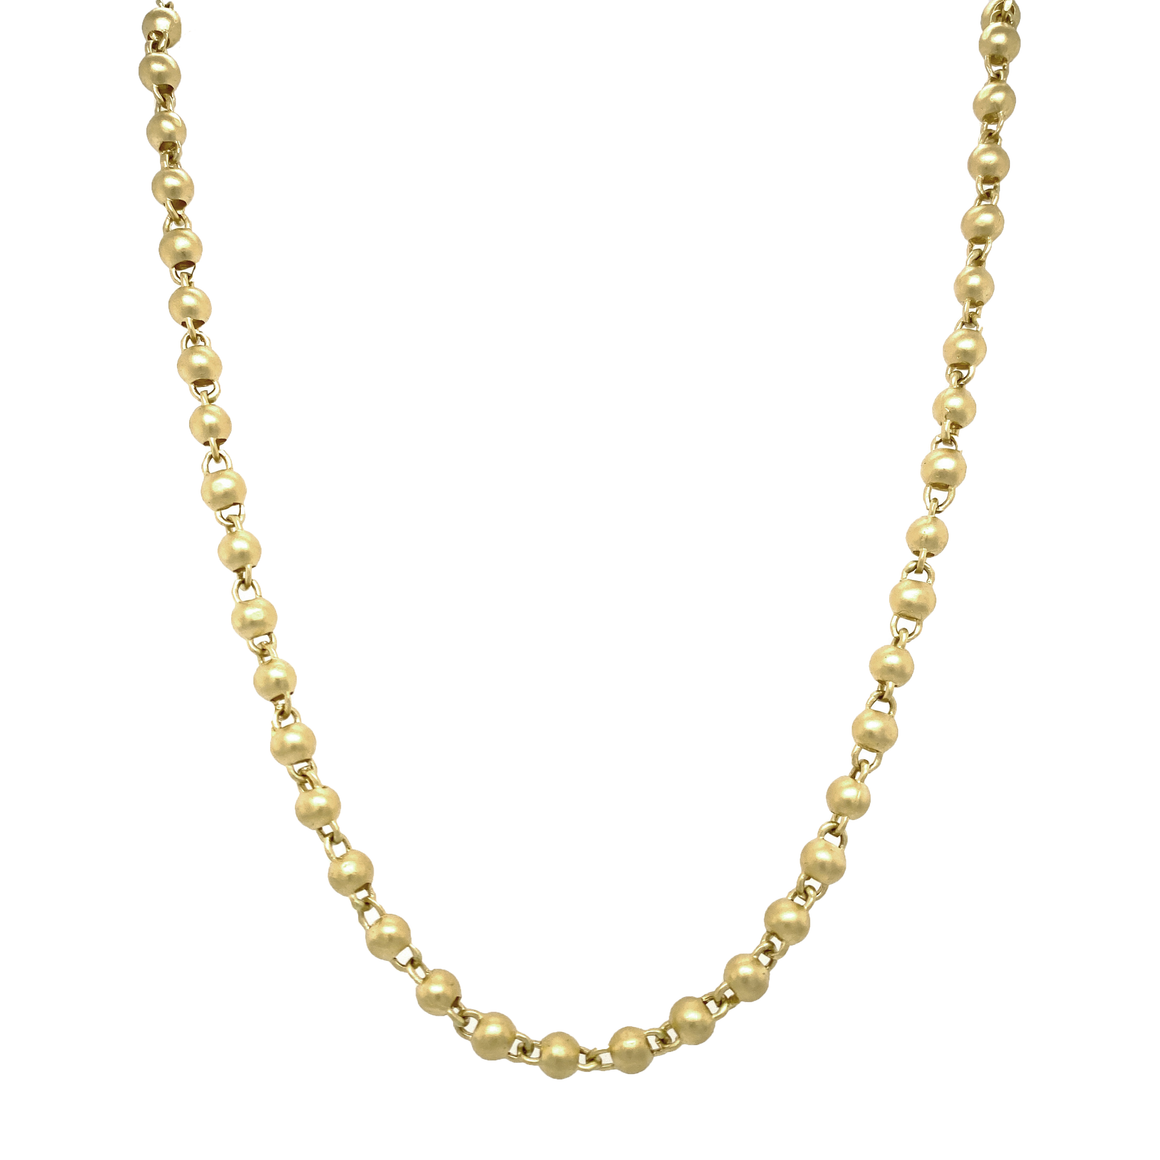 Round Bead Chain - Lesley Ann Jewels